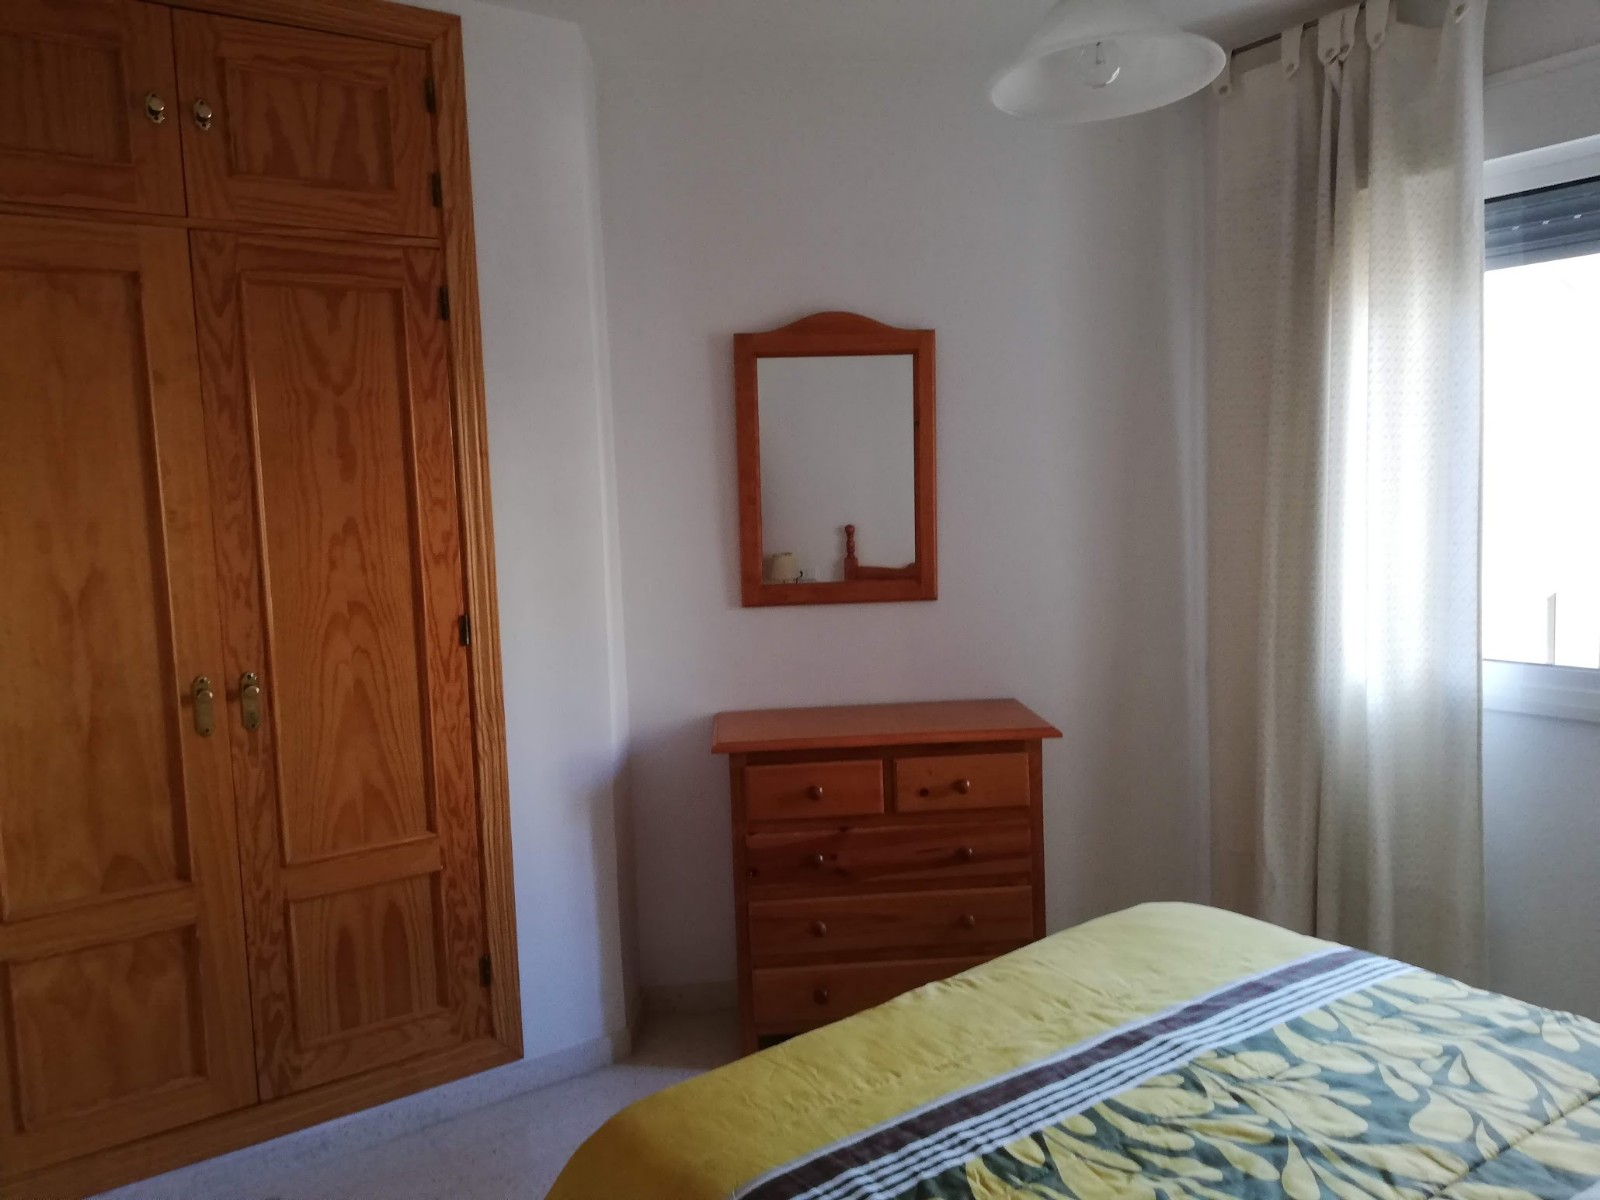 2 bedroom apartment for rent in Estepona near the park - mibgroup.es